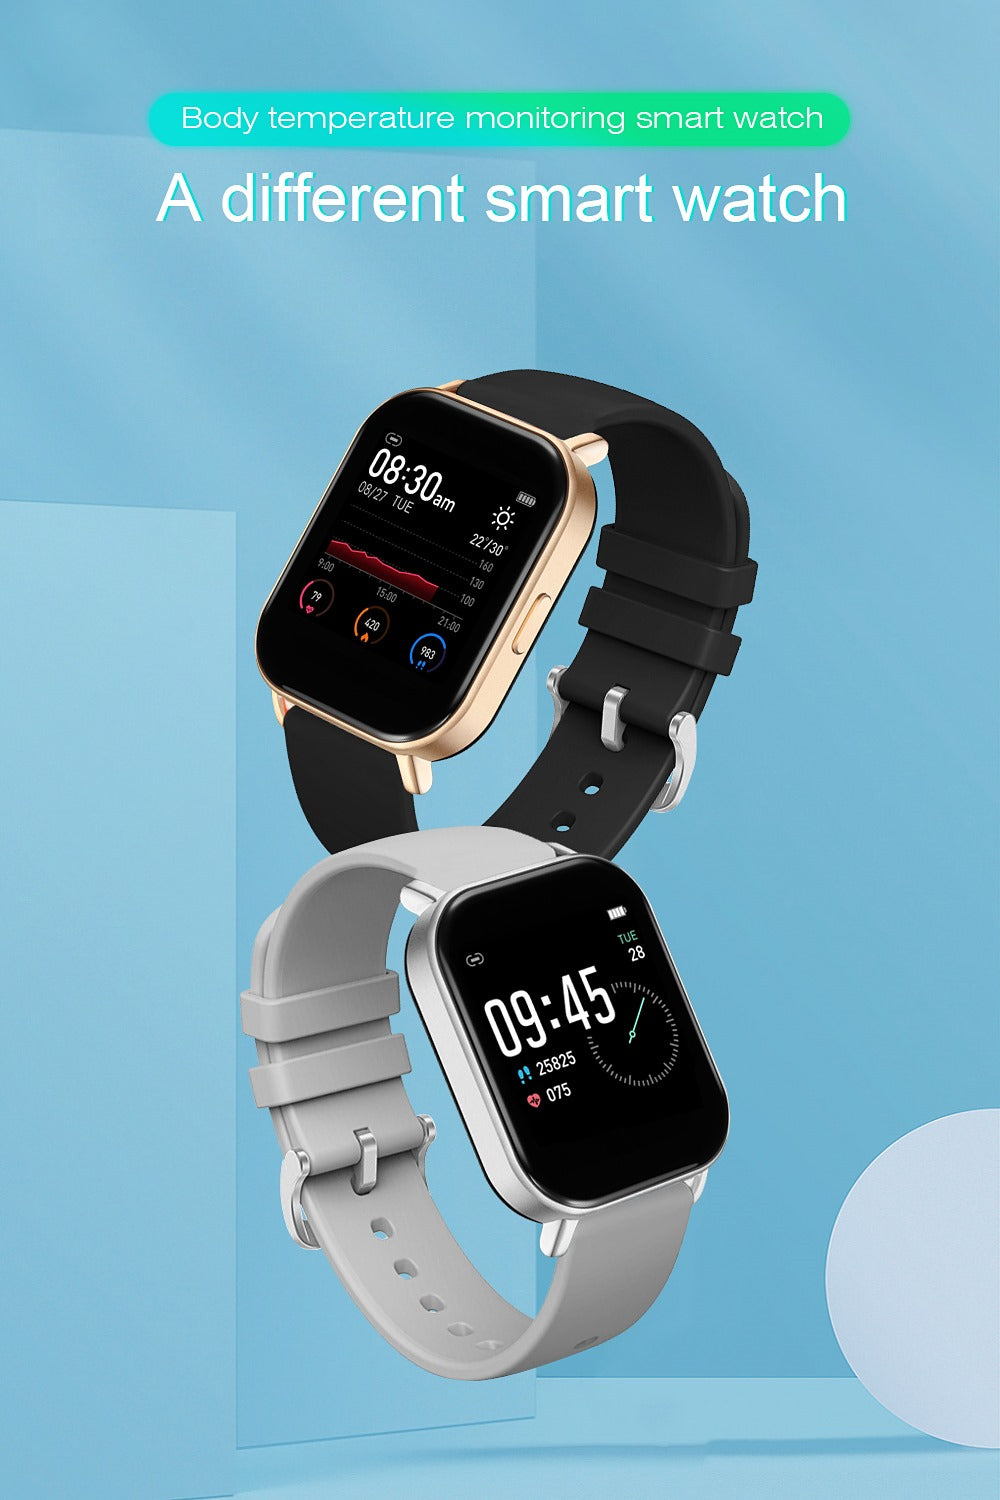 Simply order online during February 2021 for a chance to win a smart watch.